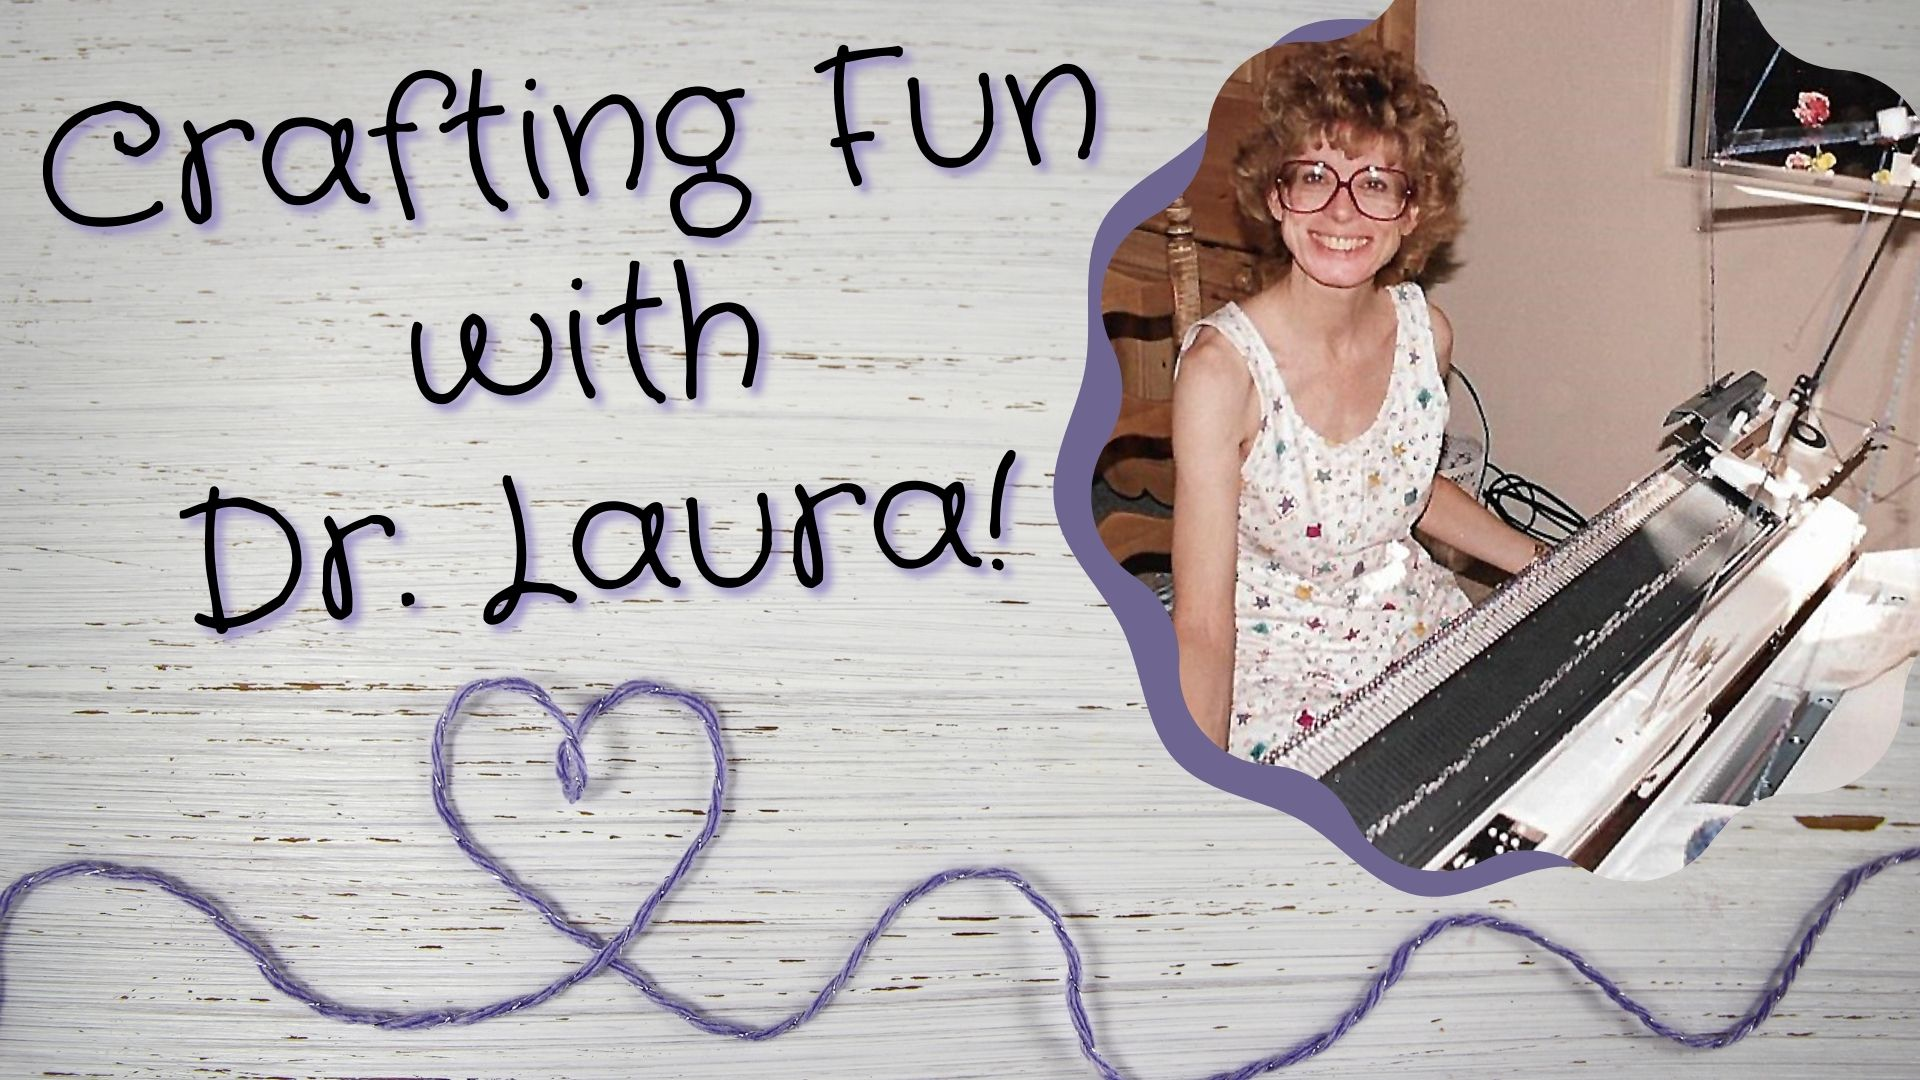 YouTube: Crafting Fun with Dr. Laura